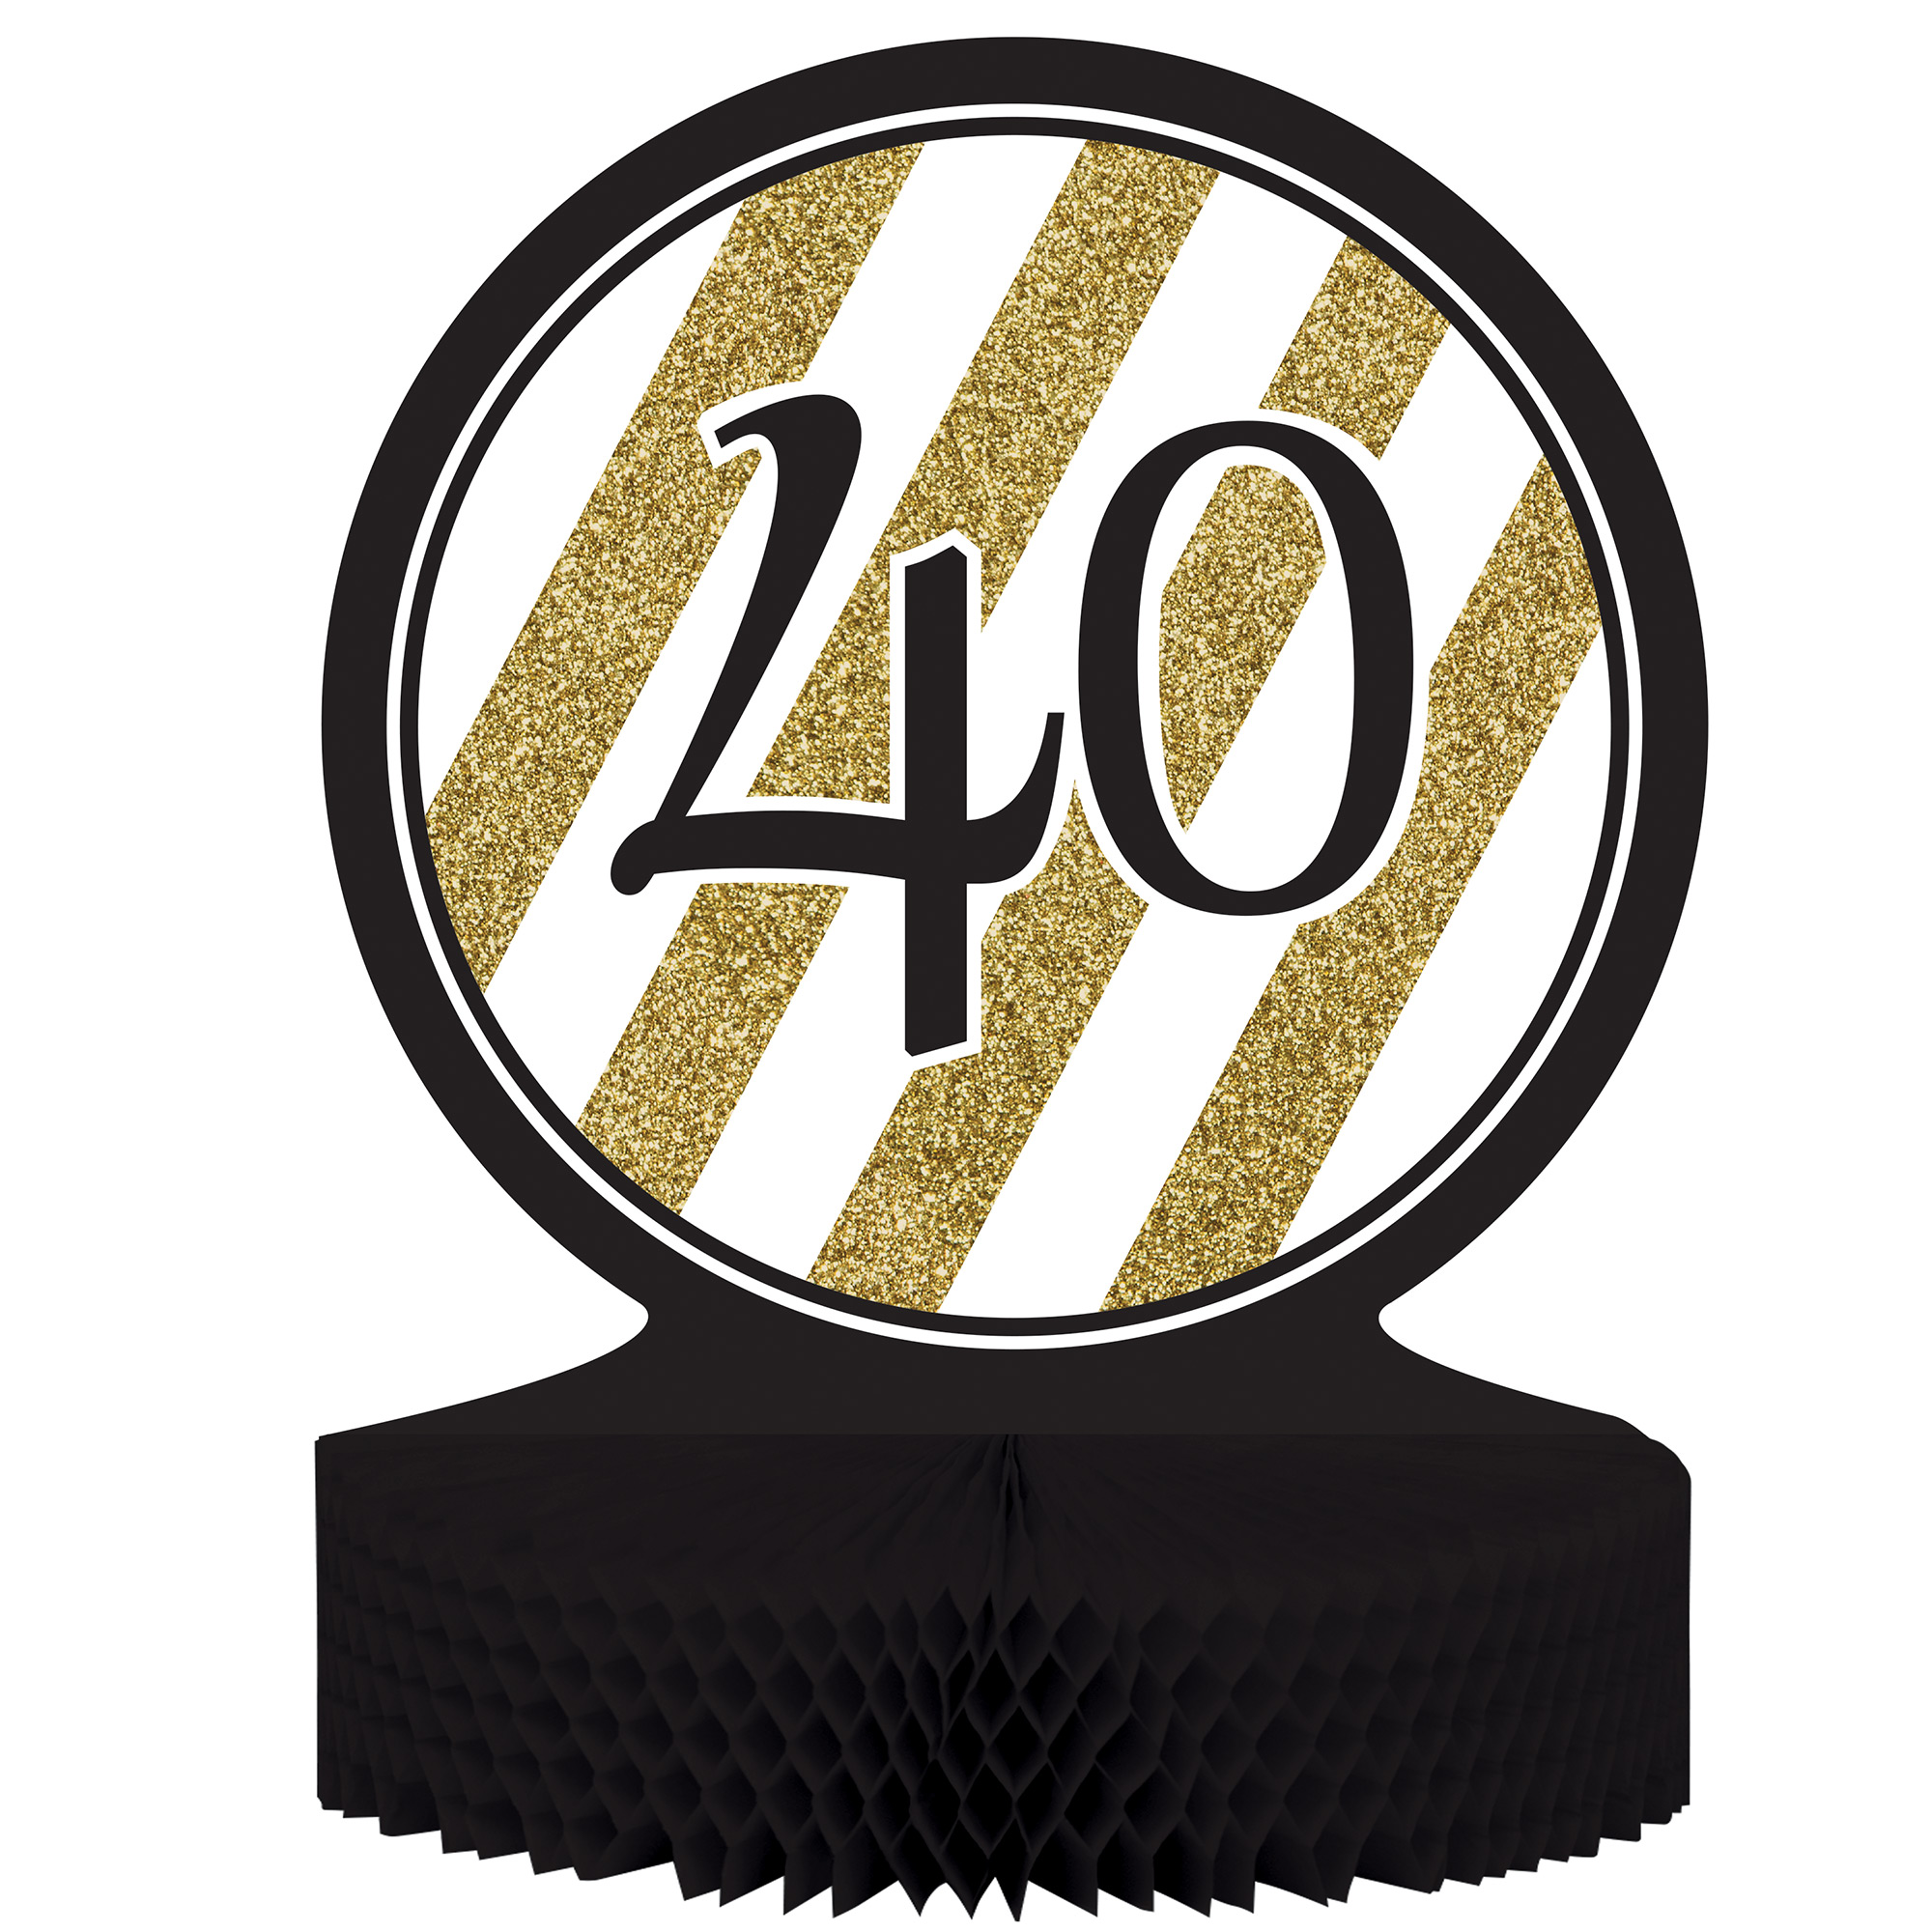 "Black & Gold 40th Birthday Honeycomb Centerpiece 12"" x 9"", Case of 6"